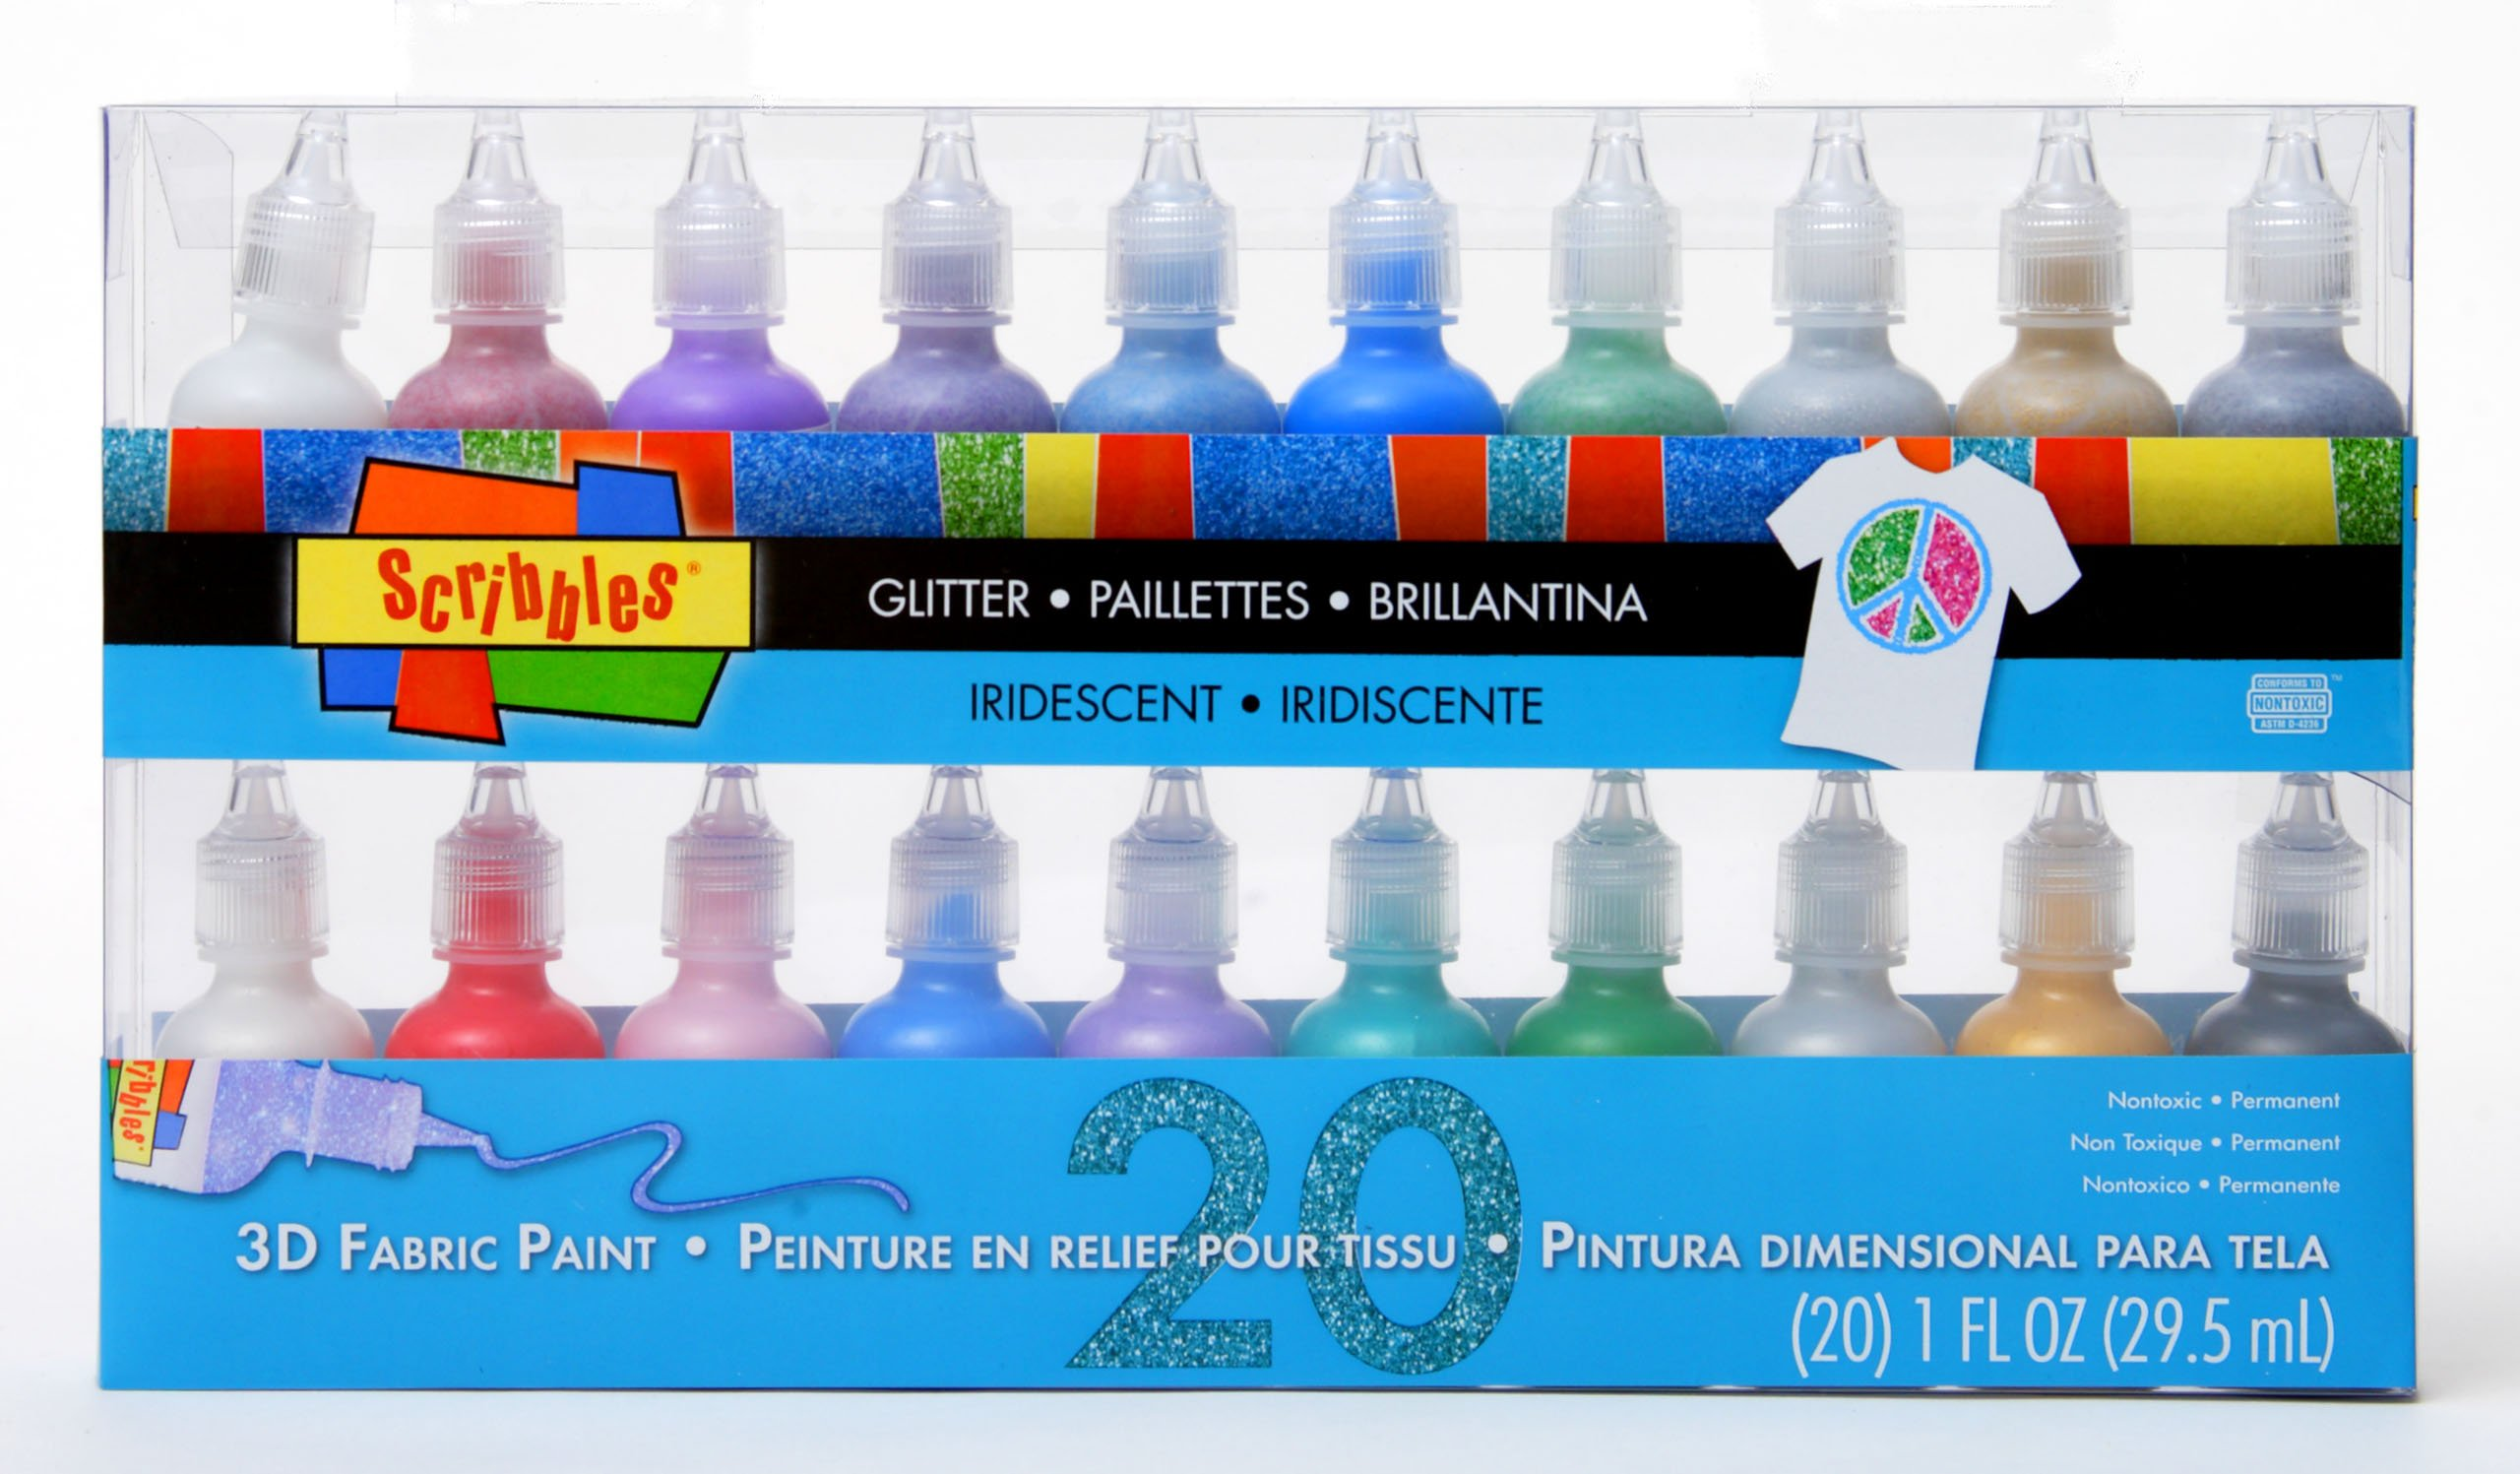 Scribbles Bulk Buy Glitter 3D Paint Glitter - Pack of 20 Glitter, Nontoxic & Permanent Dimensional Paints for Fabrics, T-Shirts, Backpacks, Posters, Glass, Wood and More